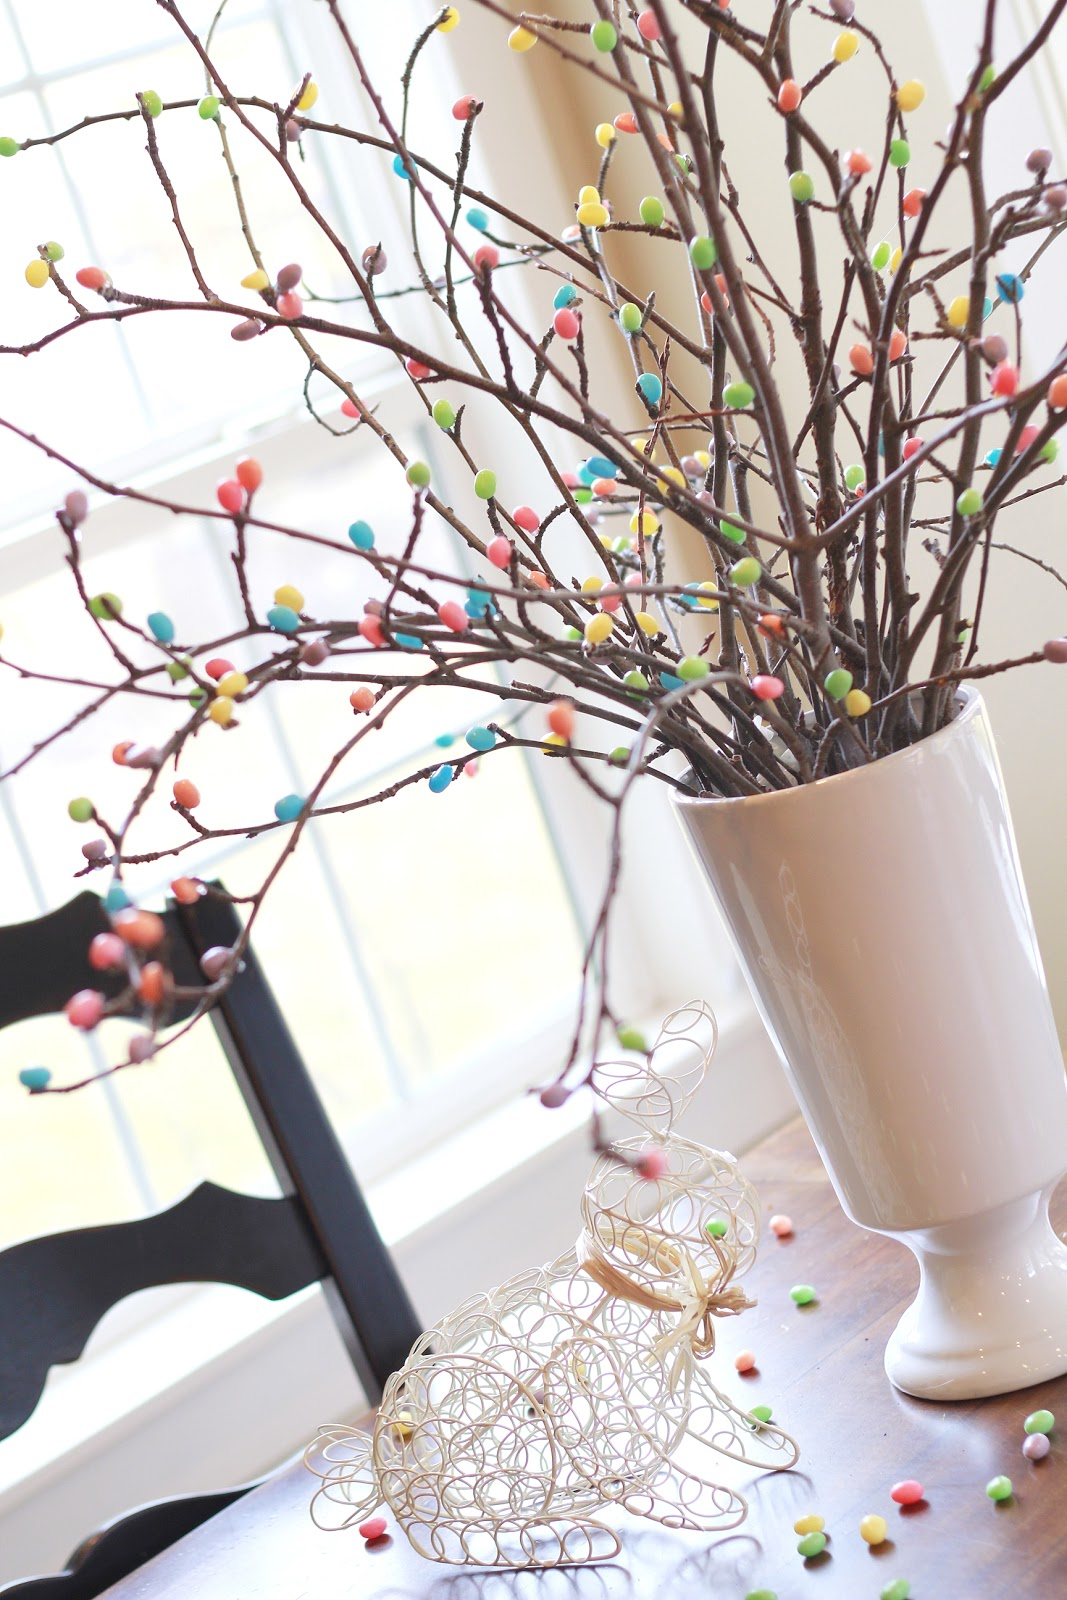 Spring butterfly pasta decor 25 easter and spring decorations - Jelly Bean Tree 25 Easter And Spring Decorations